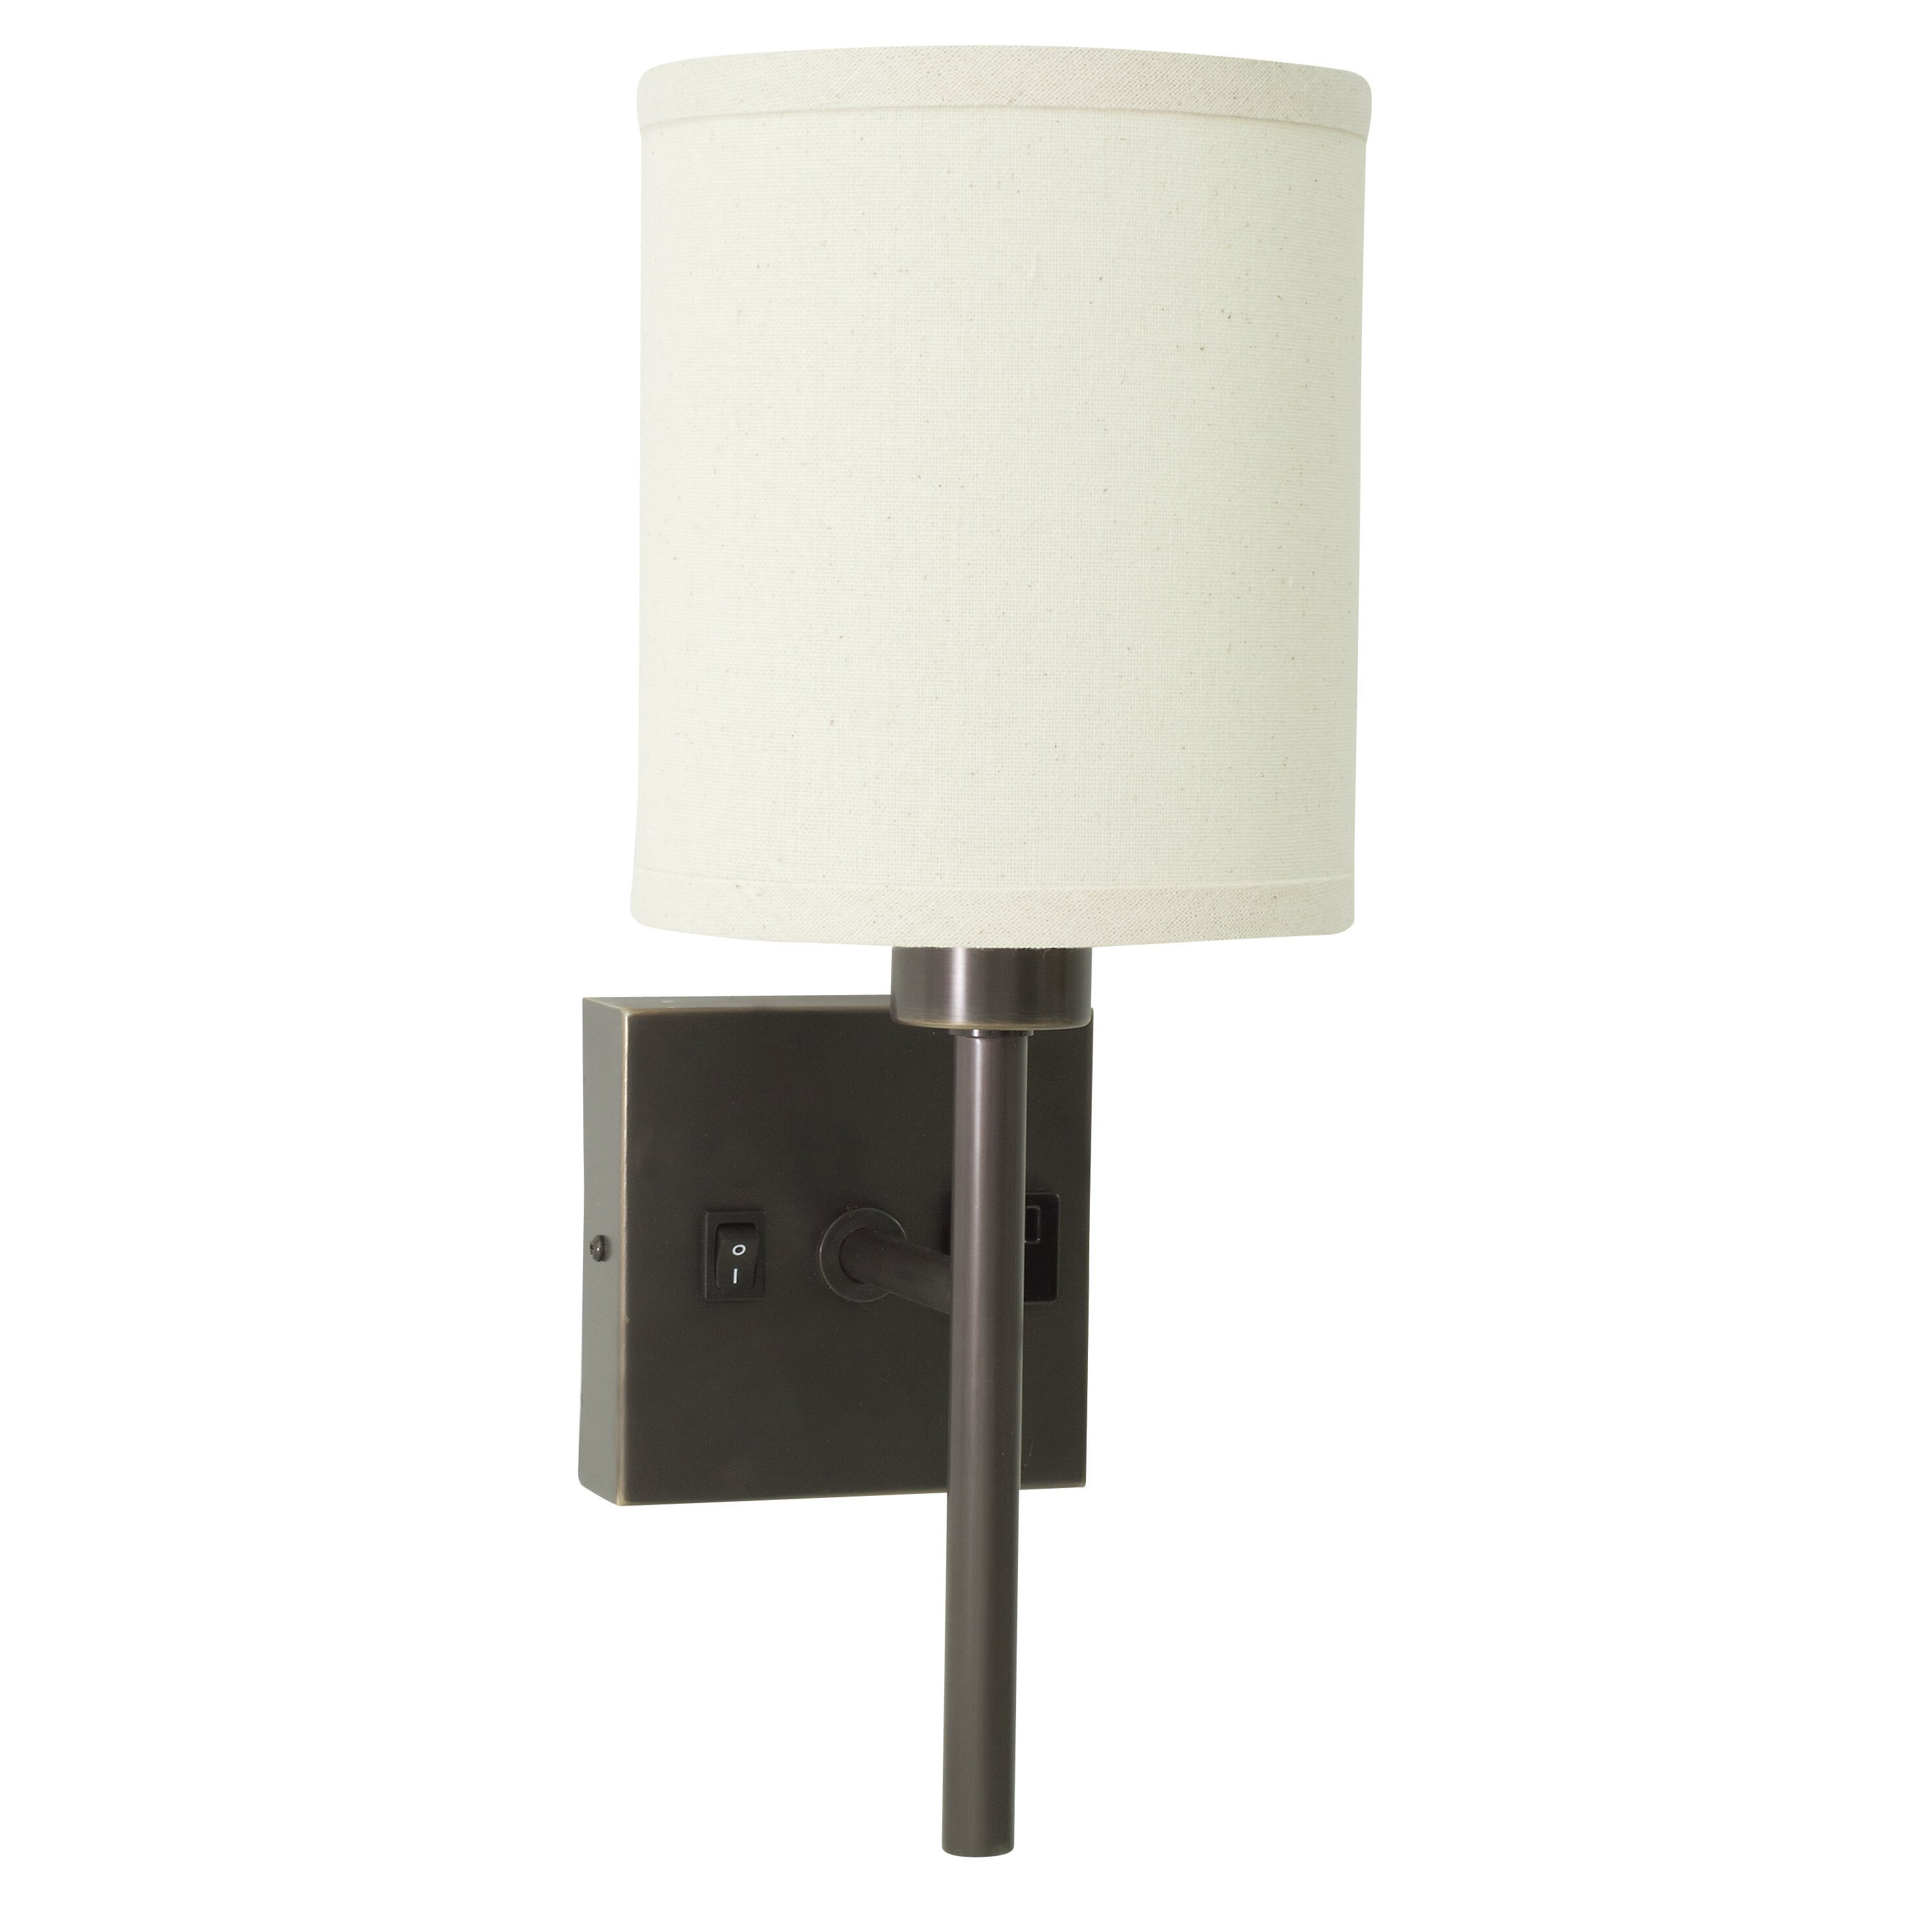 Lighting Wall Lights ... Contemporary Wall Sconces House of Troy SKU ...